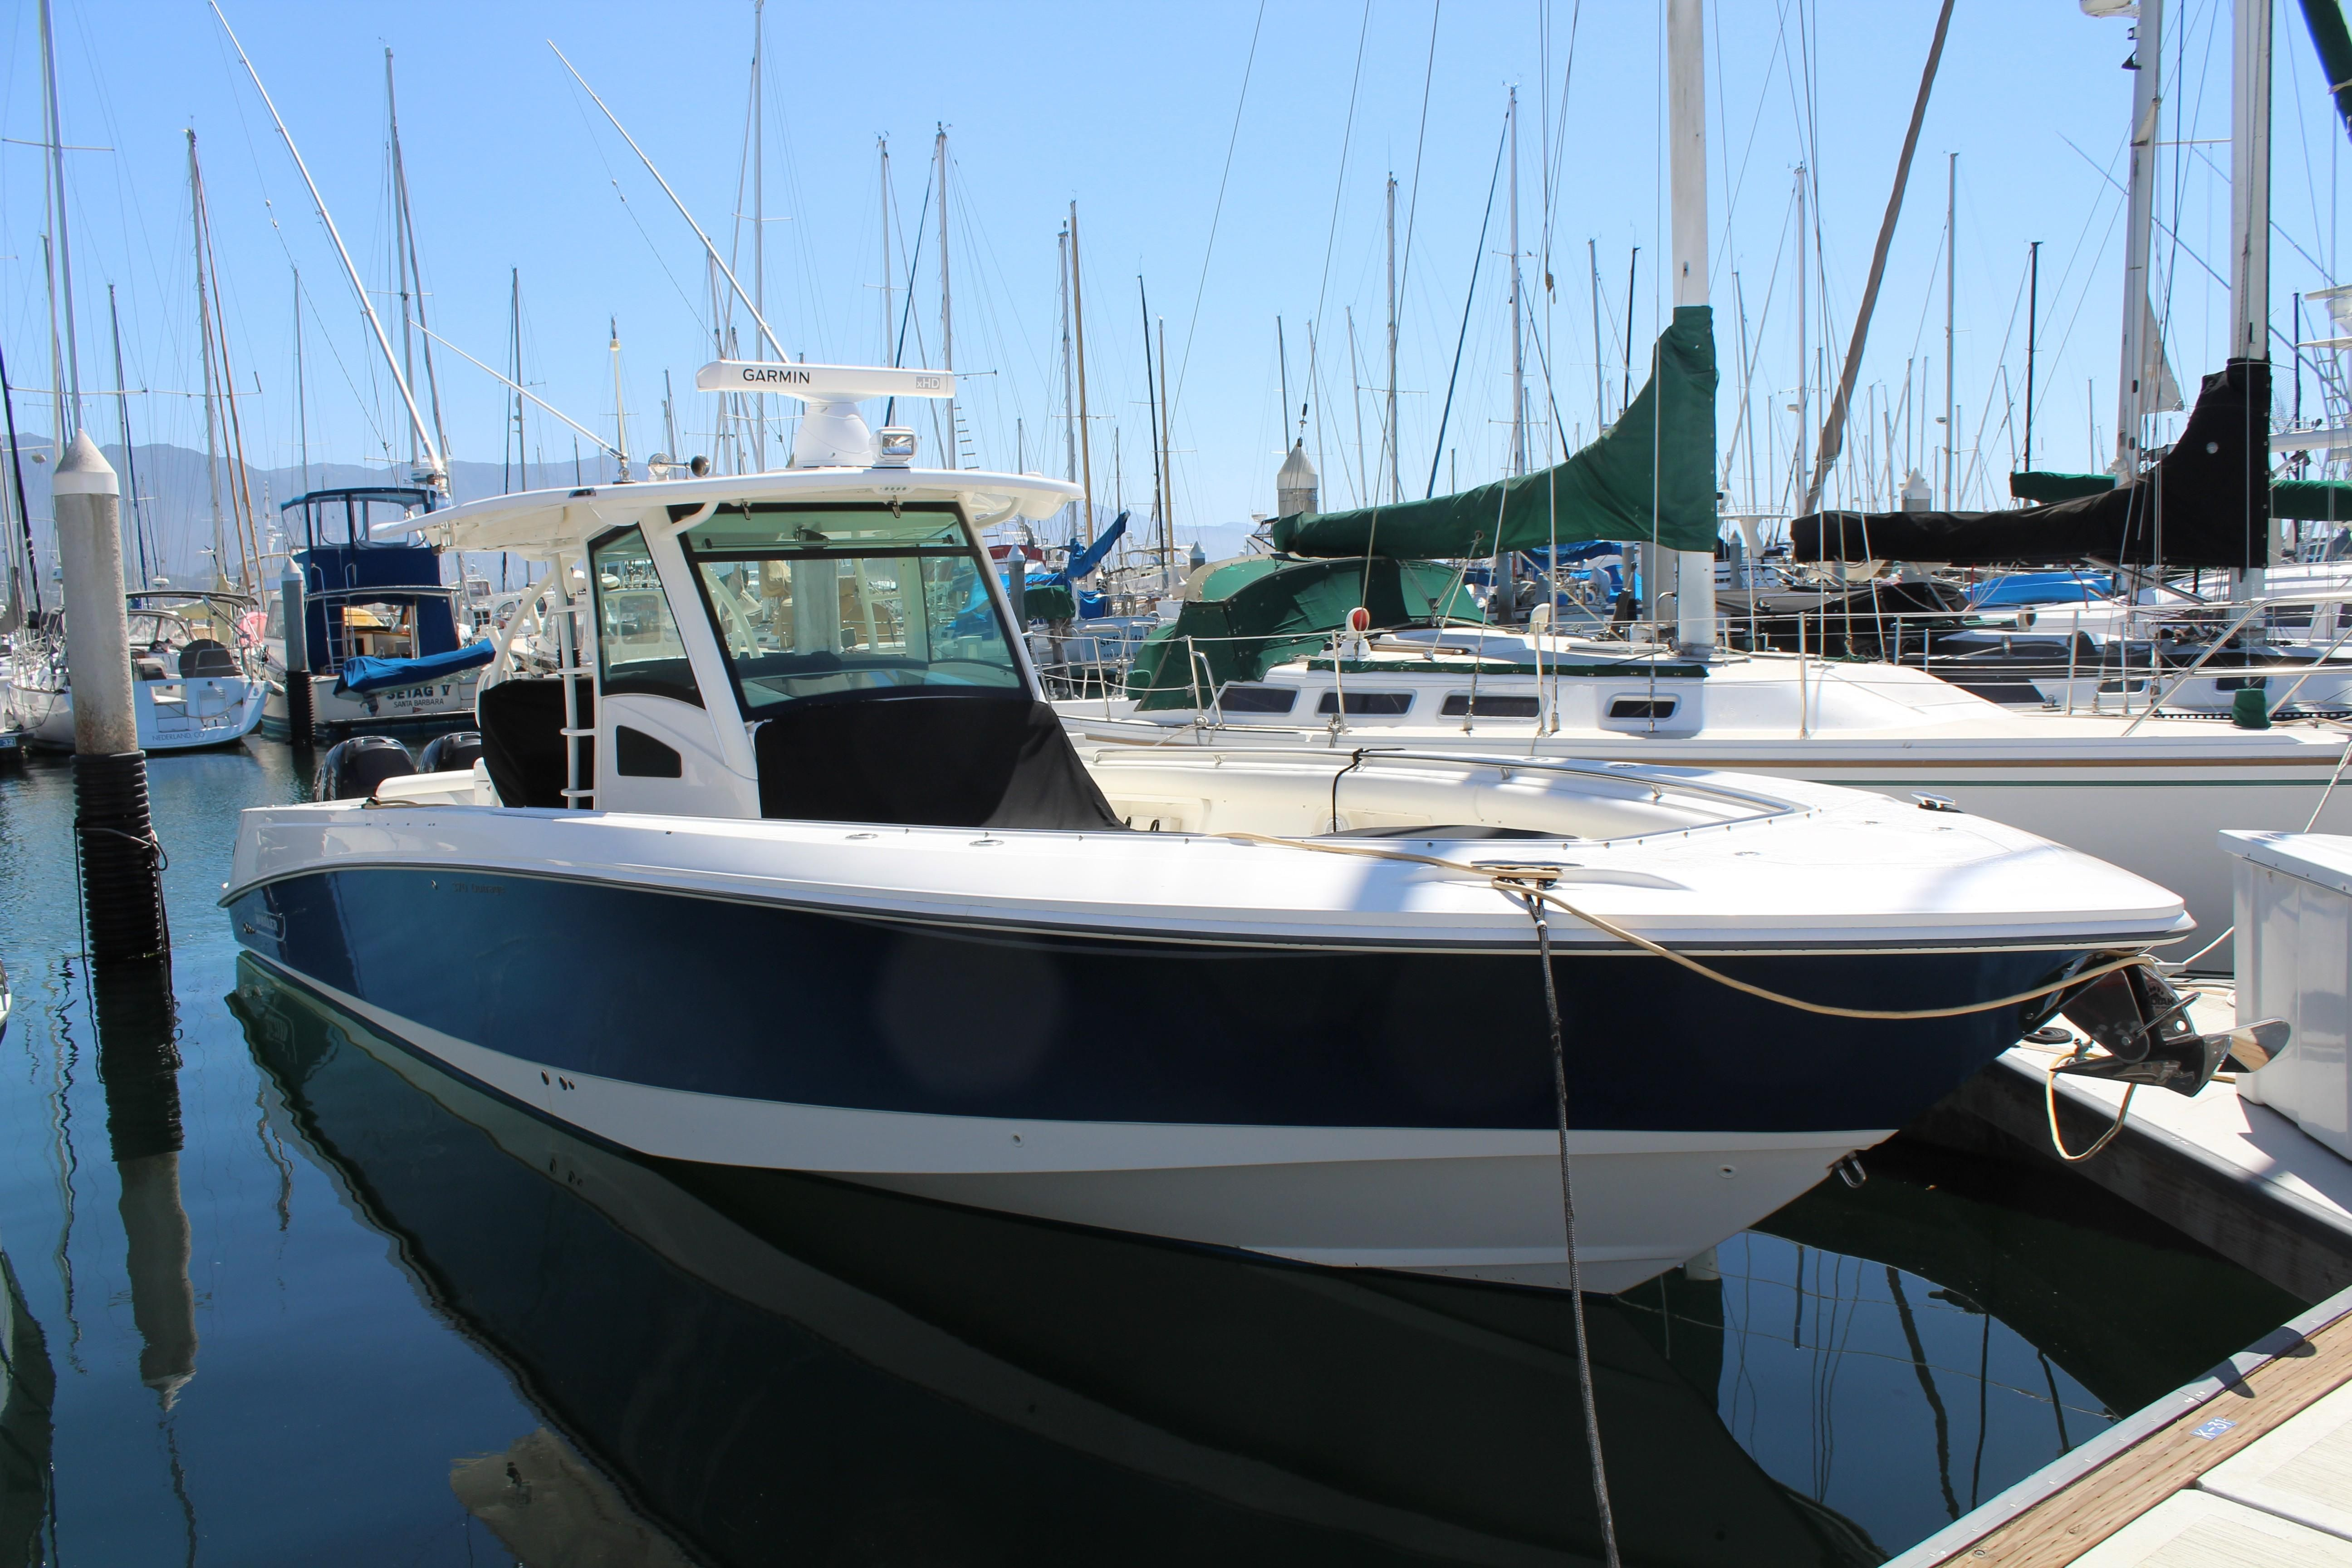 Boston Whaler Outrage 370 The Impressive 370 Outrage Earned A Coveted Nmma Innovation Award A Used Fishing Boats Fishing Boats For Sale Aluminum Fishing Boats